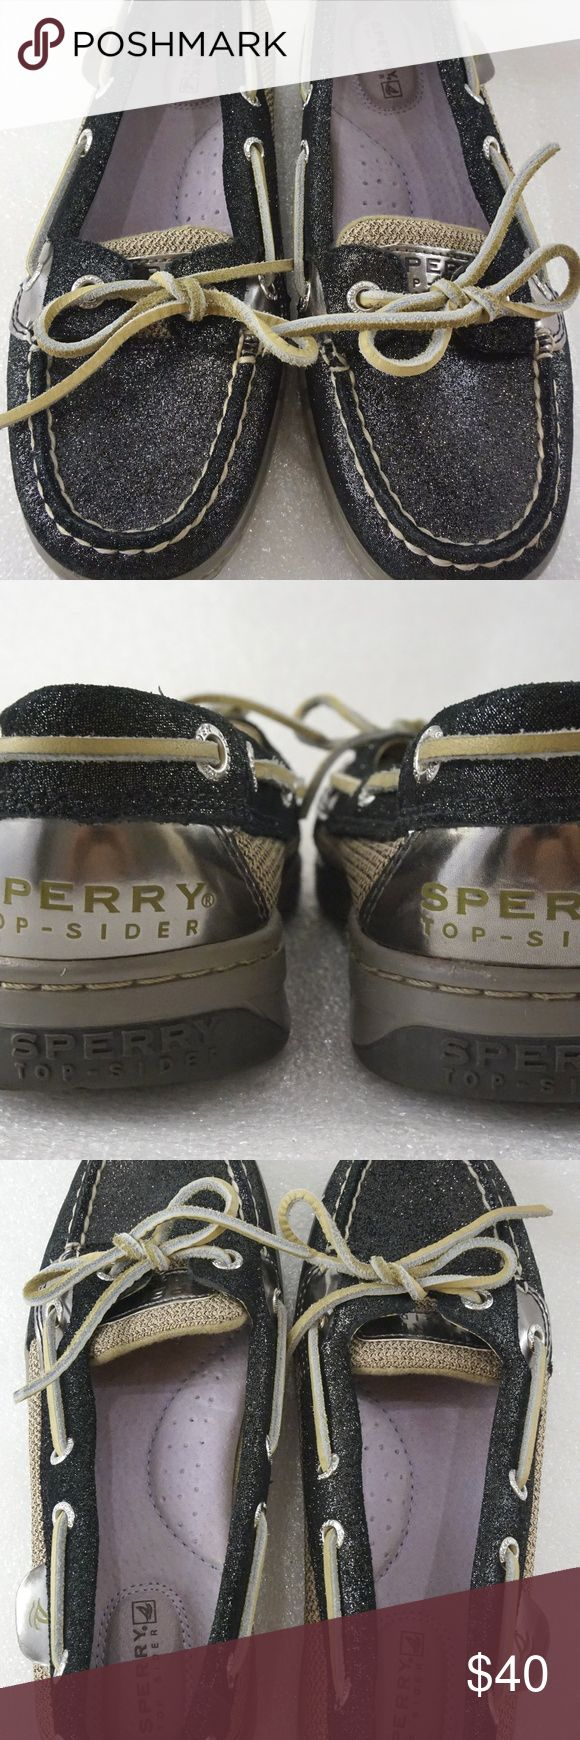 """Sperry Top-Sider 5.5 Women Boat Shoes Sparkle Great condition Sperry Top-Siders boat shoes for sale.   Size: 5.5M Measurements Length: 9.35"""" from back of sole to very front of toe Width: 3.35"""" measured at widest part of shoe  I will ship out within 24 hours of receiving payment. Thank you Sperry Shoes Flats & Loafers"""